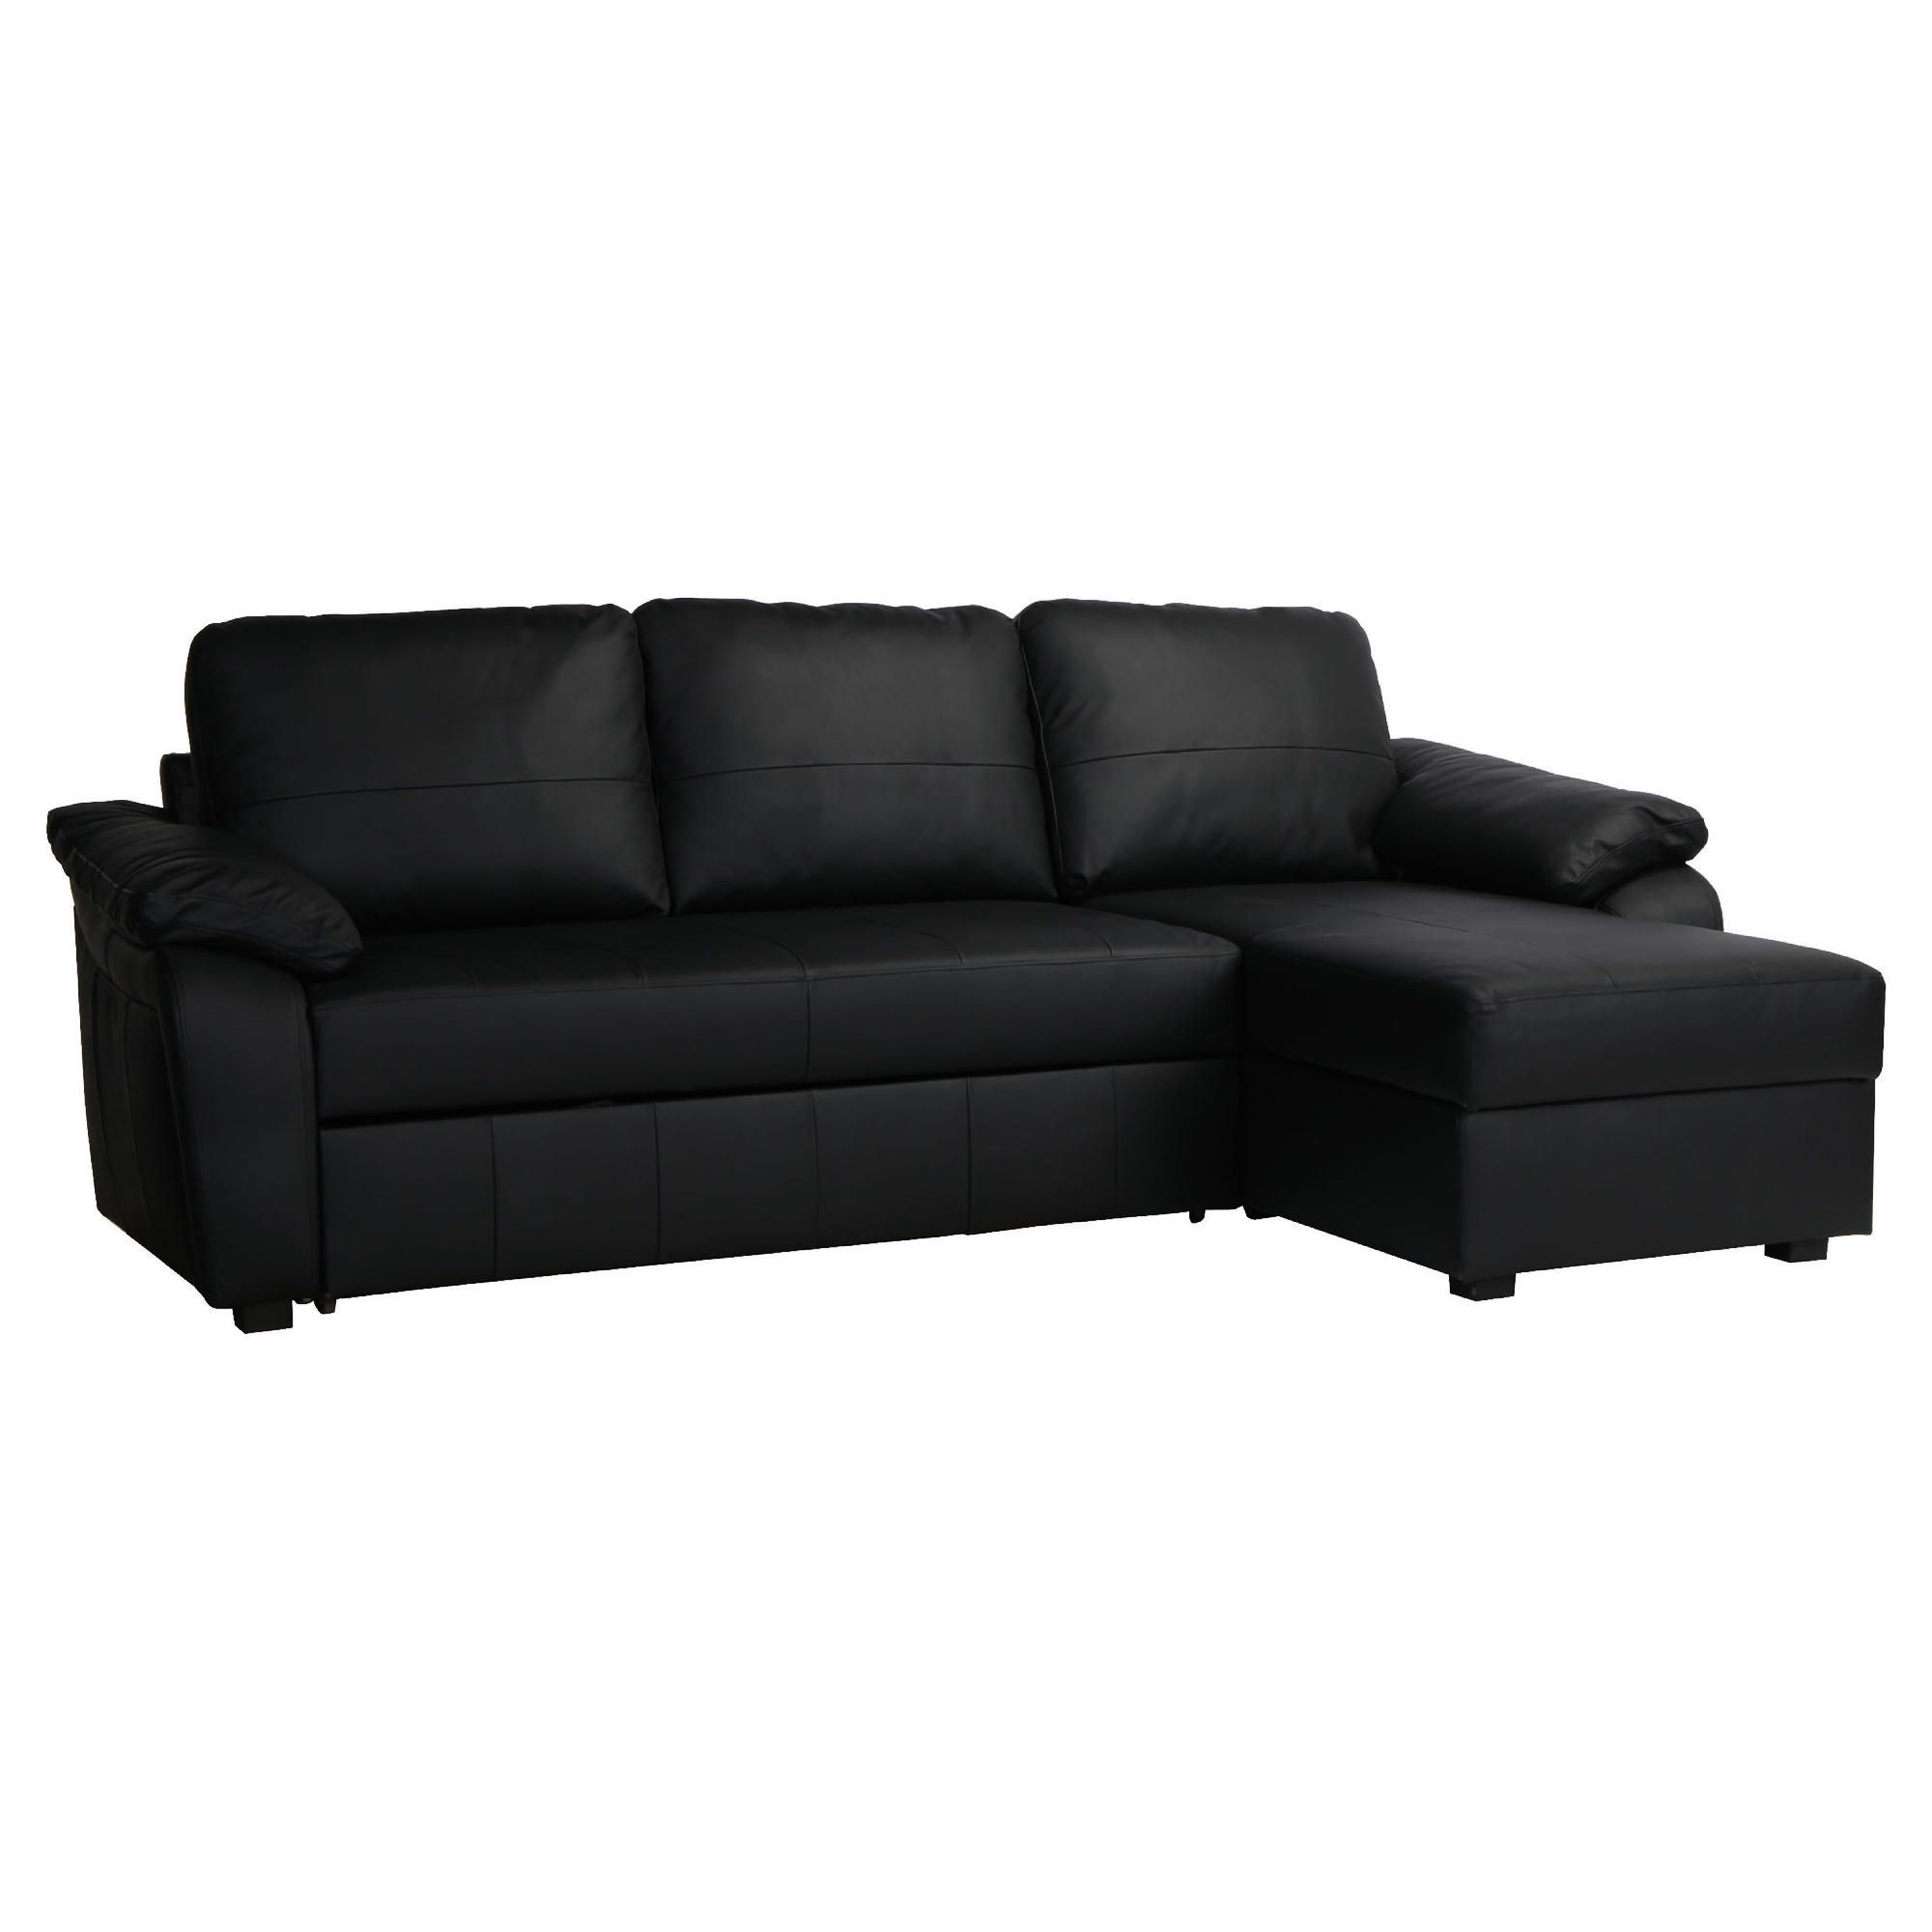 Ashmore Leather Corner Chaise Sofabed Black Right Hand Facing at Tesco Direct